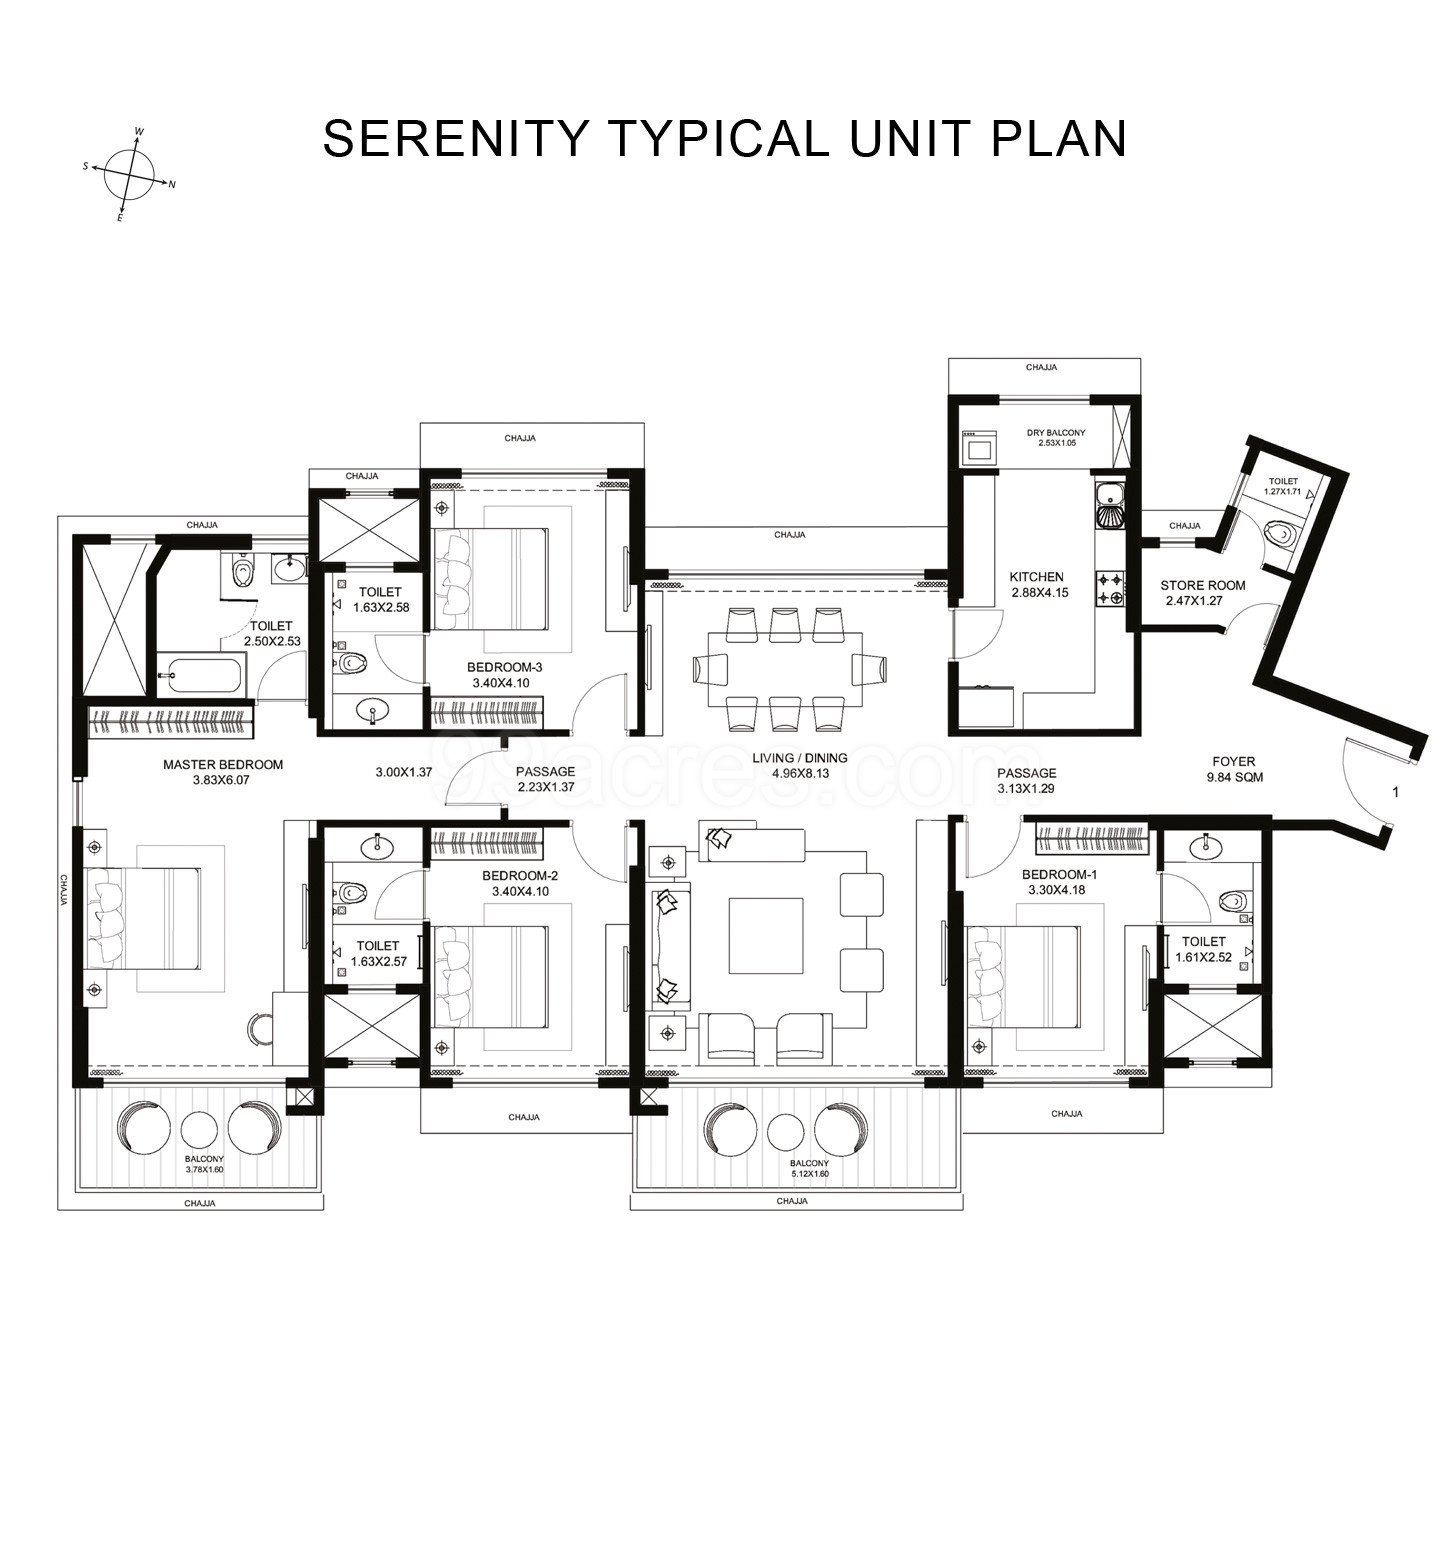 97+ Floor Plan Of Serenity From Firefly